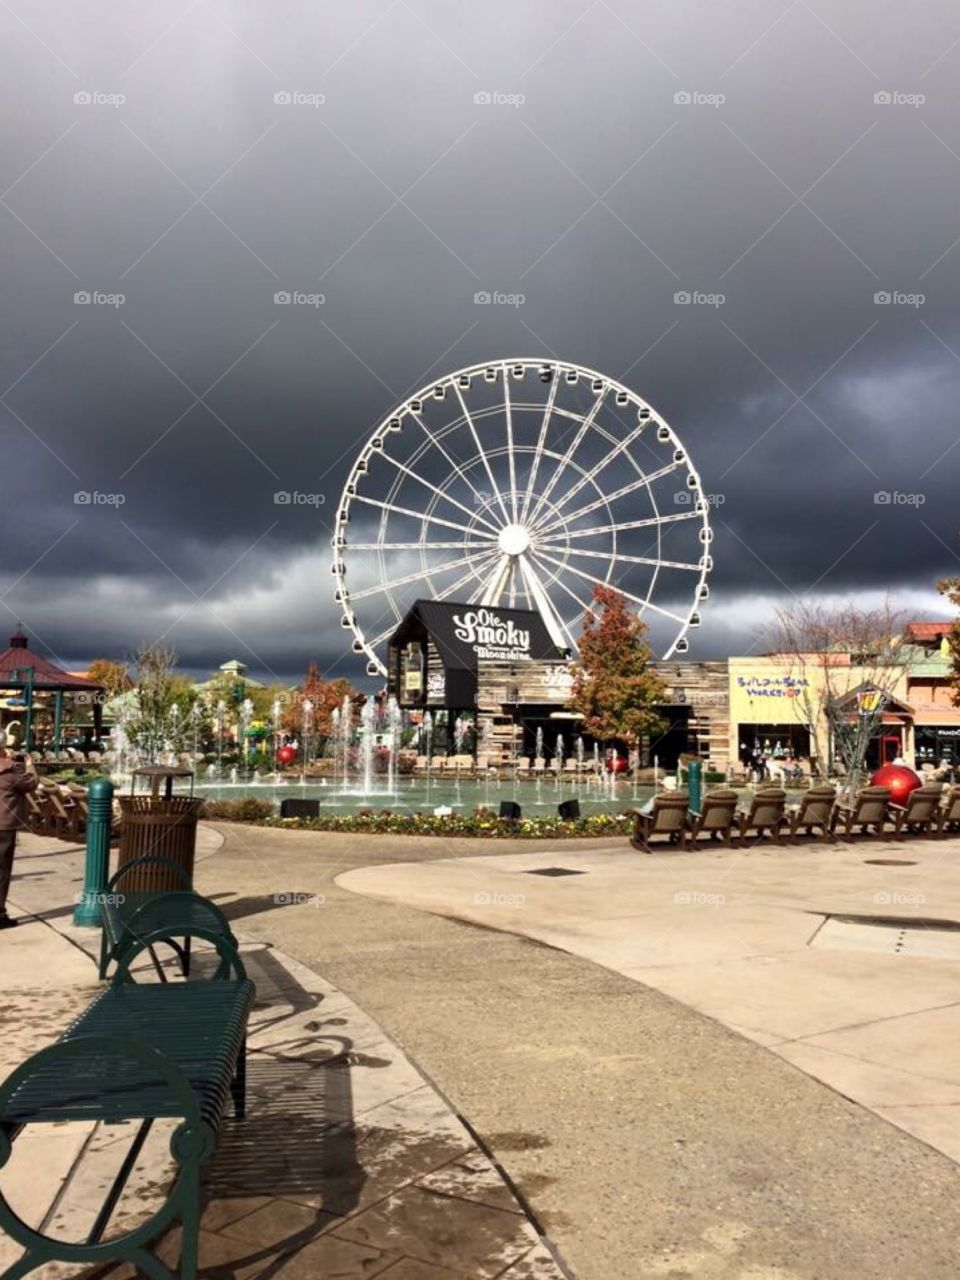 The Wheel and stormy morning in Pigeon Forge